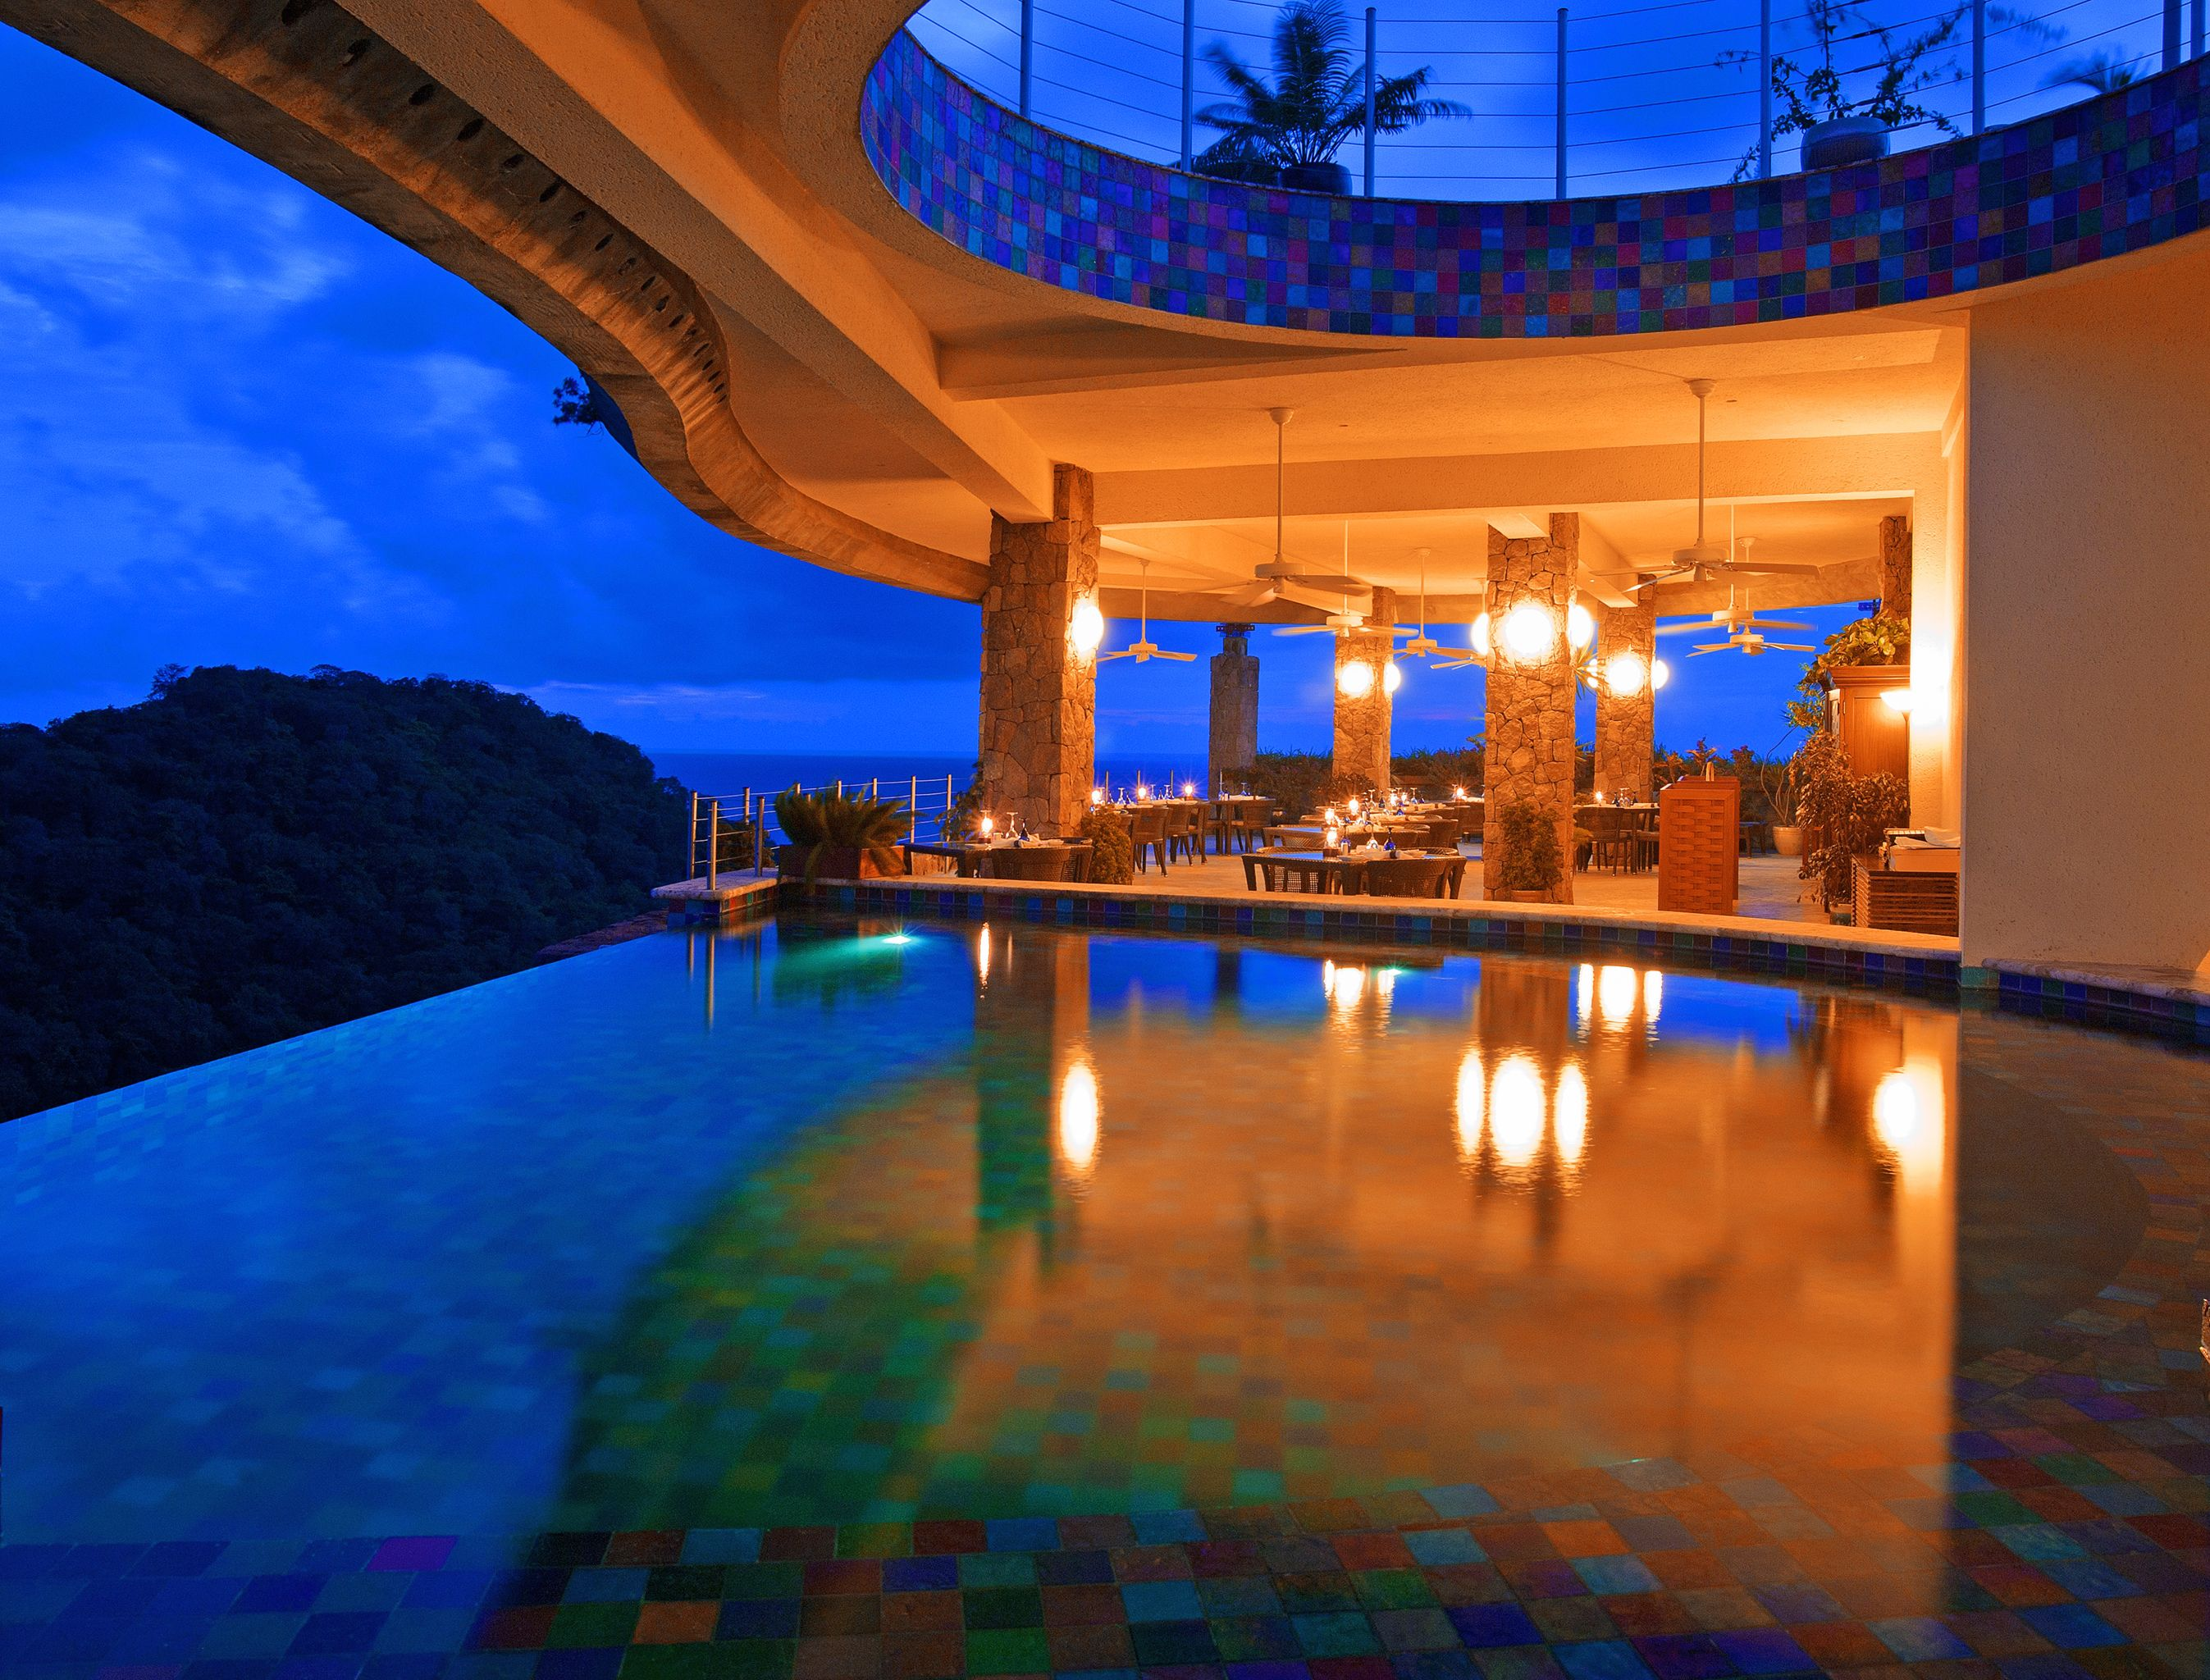 St Lucia  The Tropical Travelers  Jade mountain resort